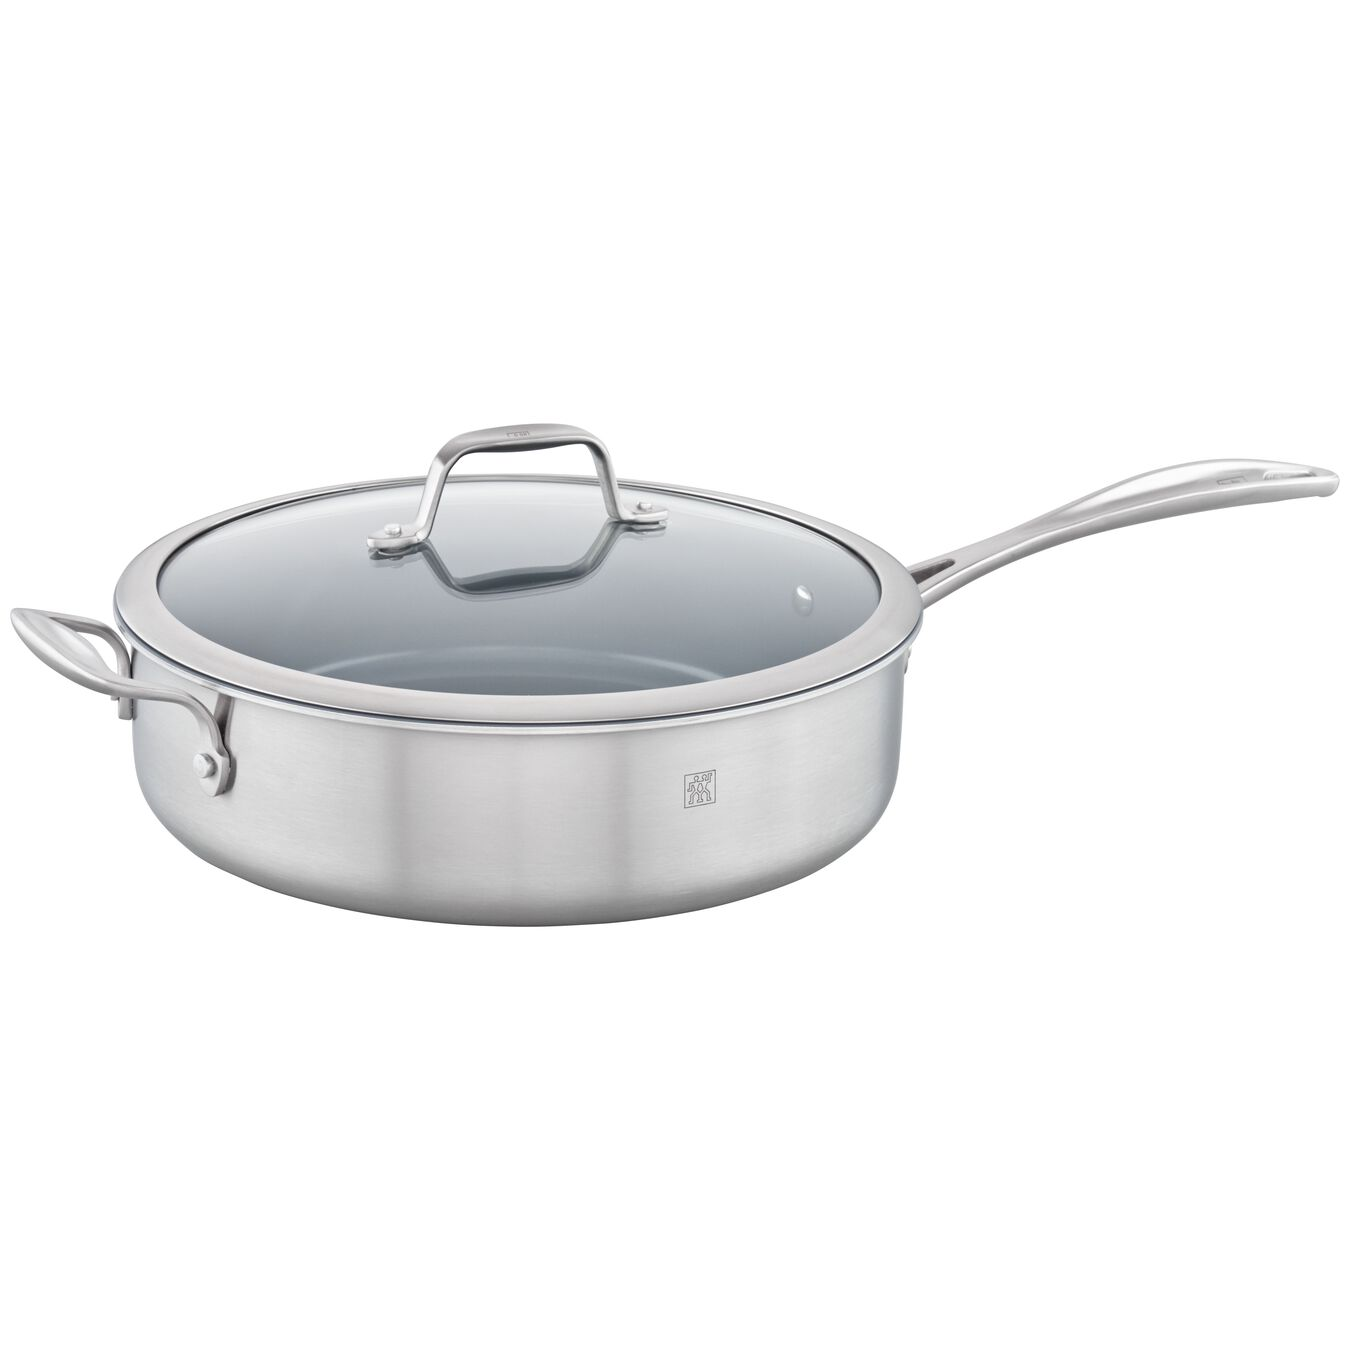 11-inch Saute pan, 18/10 Stainless Steel ,,large 1